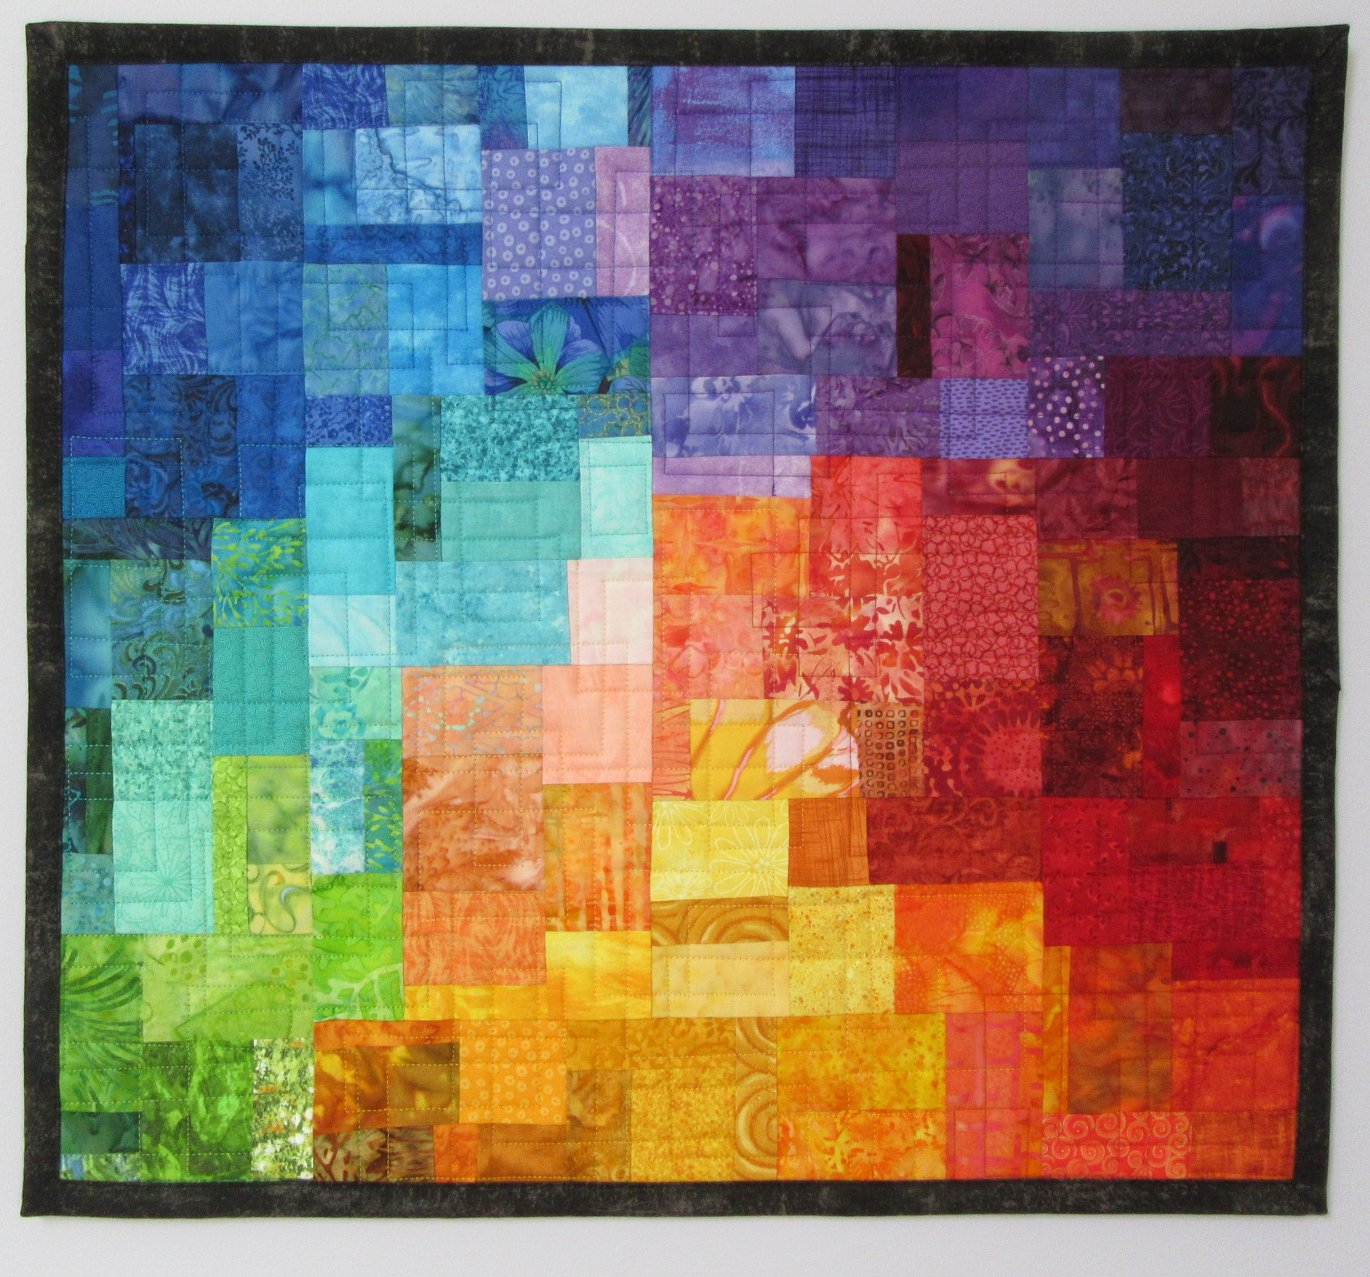 Quilt Stitching to enhance Mosaic Art Quilts - Art Quilts by Sharon : artistic quilts - Adamdwight.com